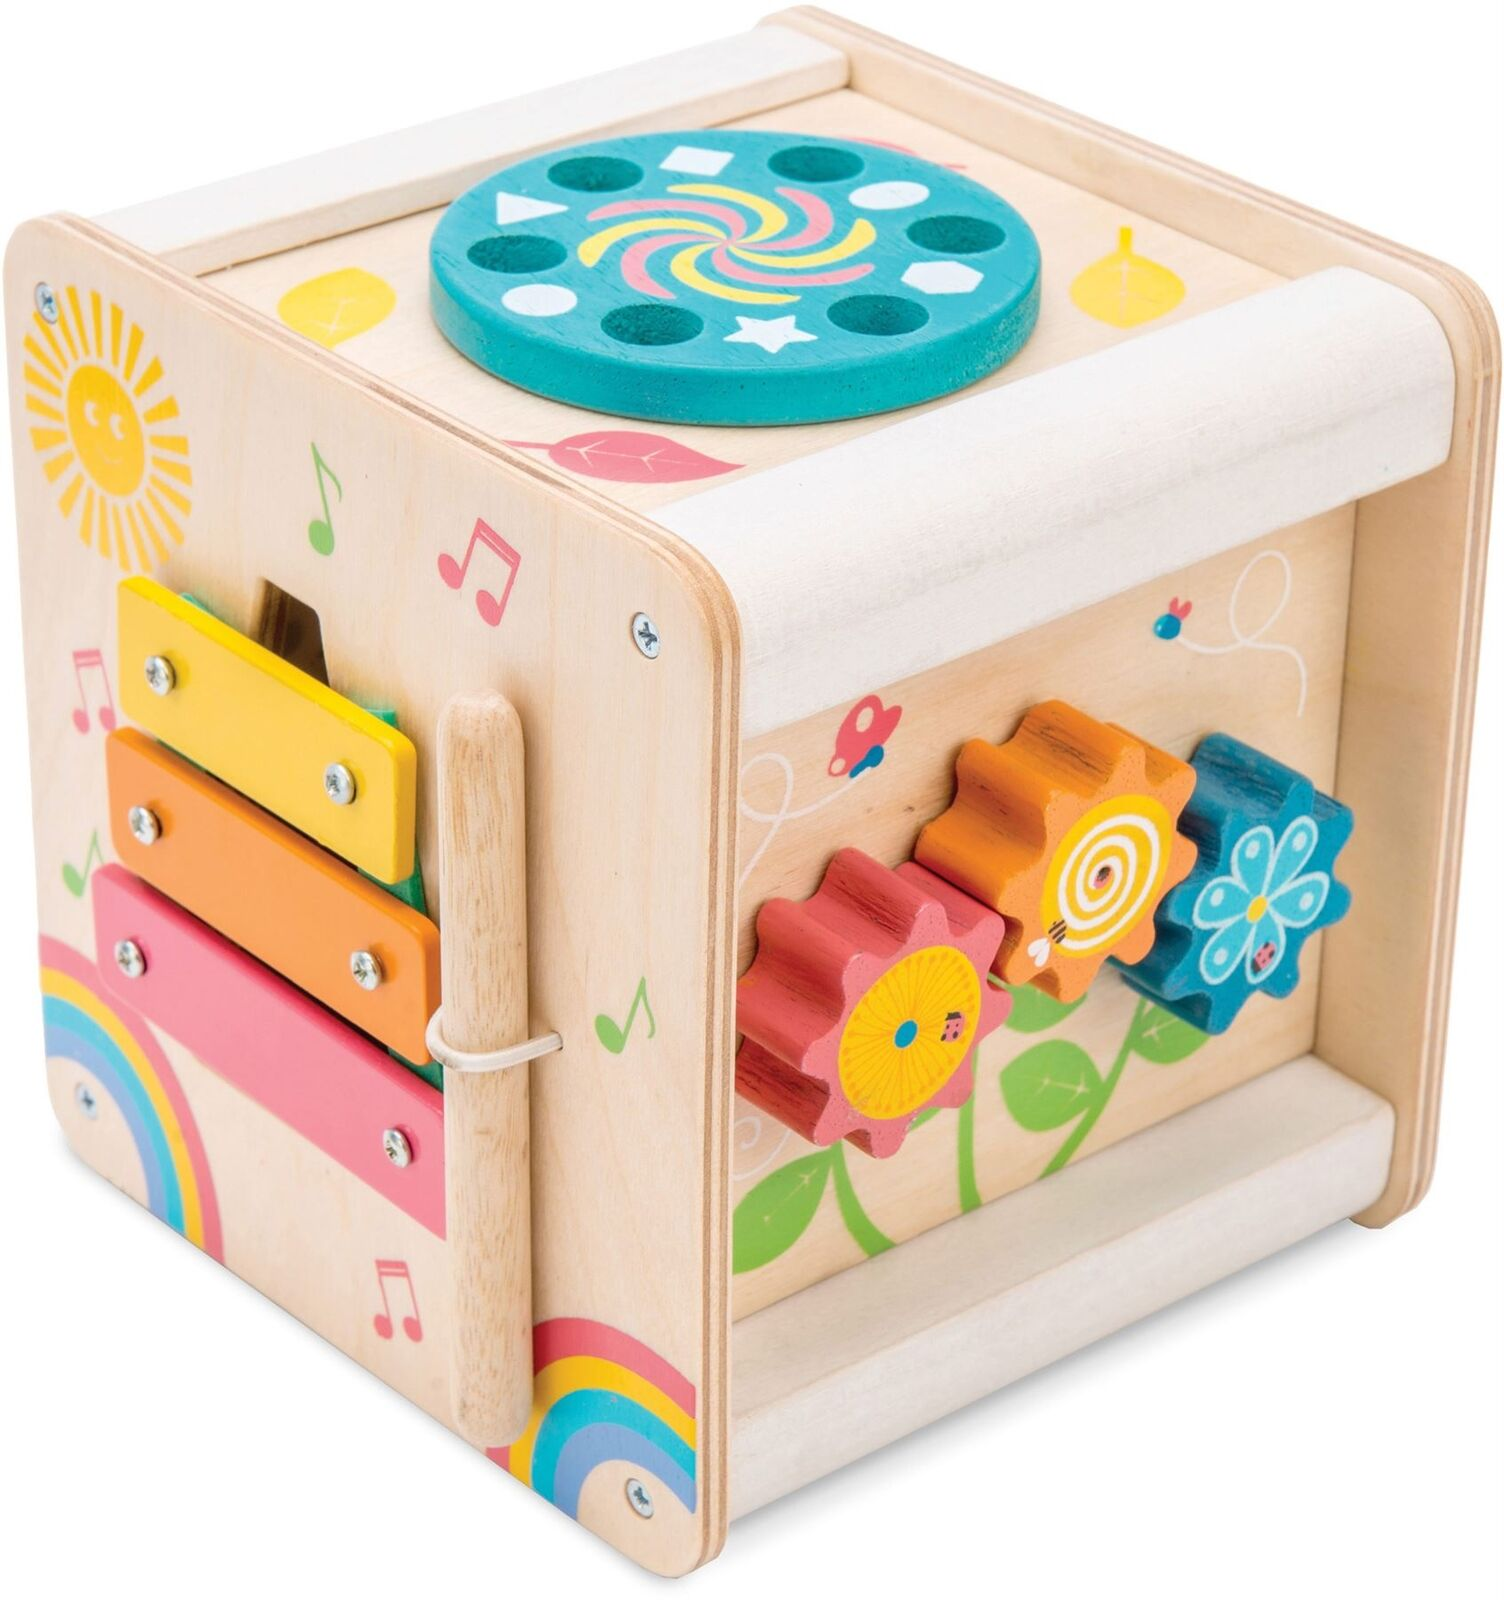 Le Toy Van PETILOU PETIT ACTIVITY CUBE Pre-School Wooden Toy BN